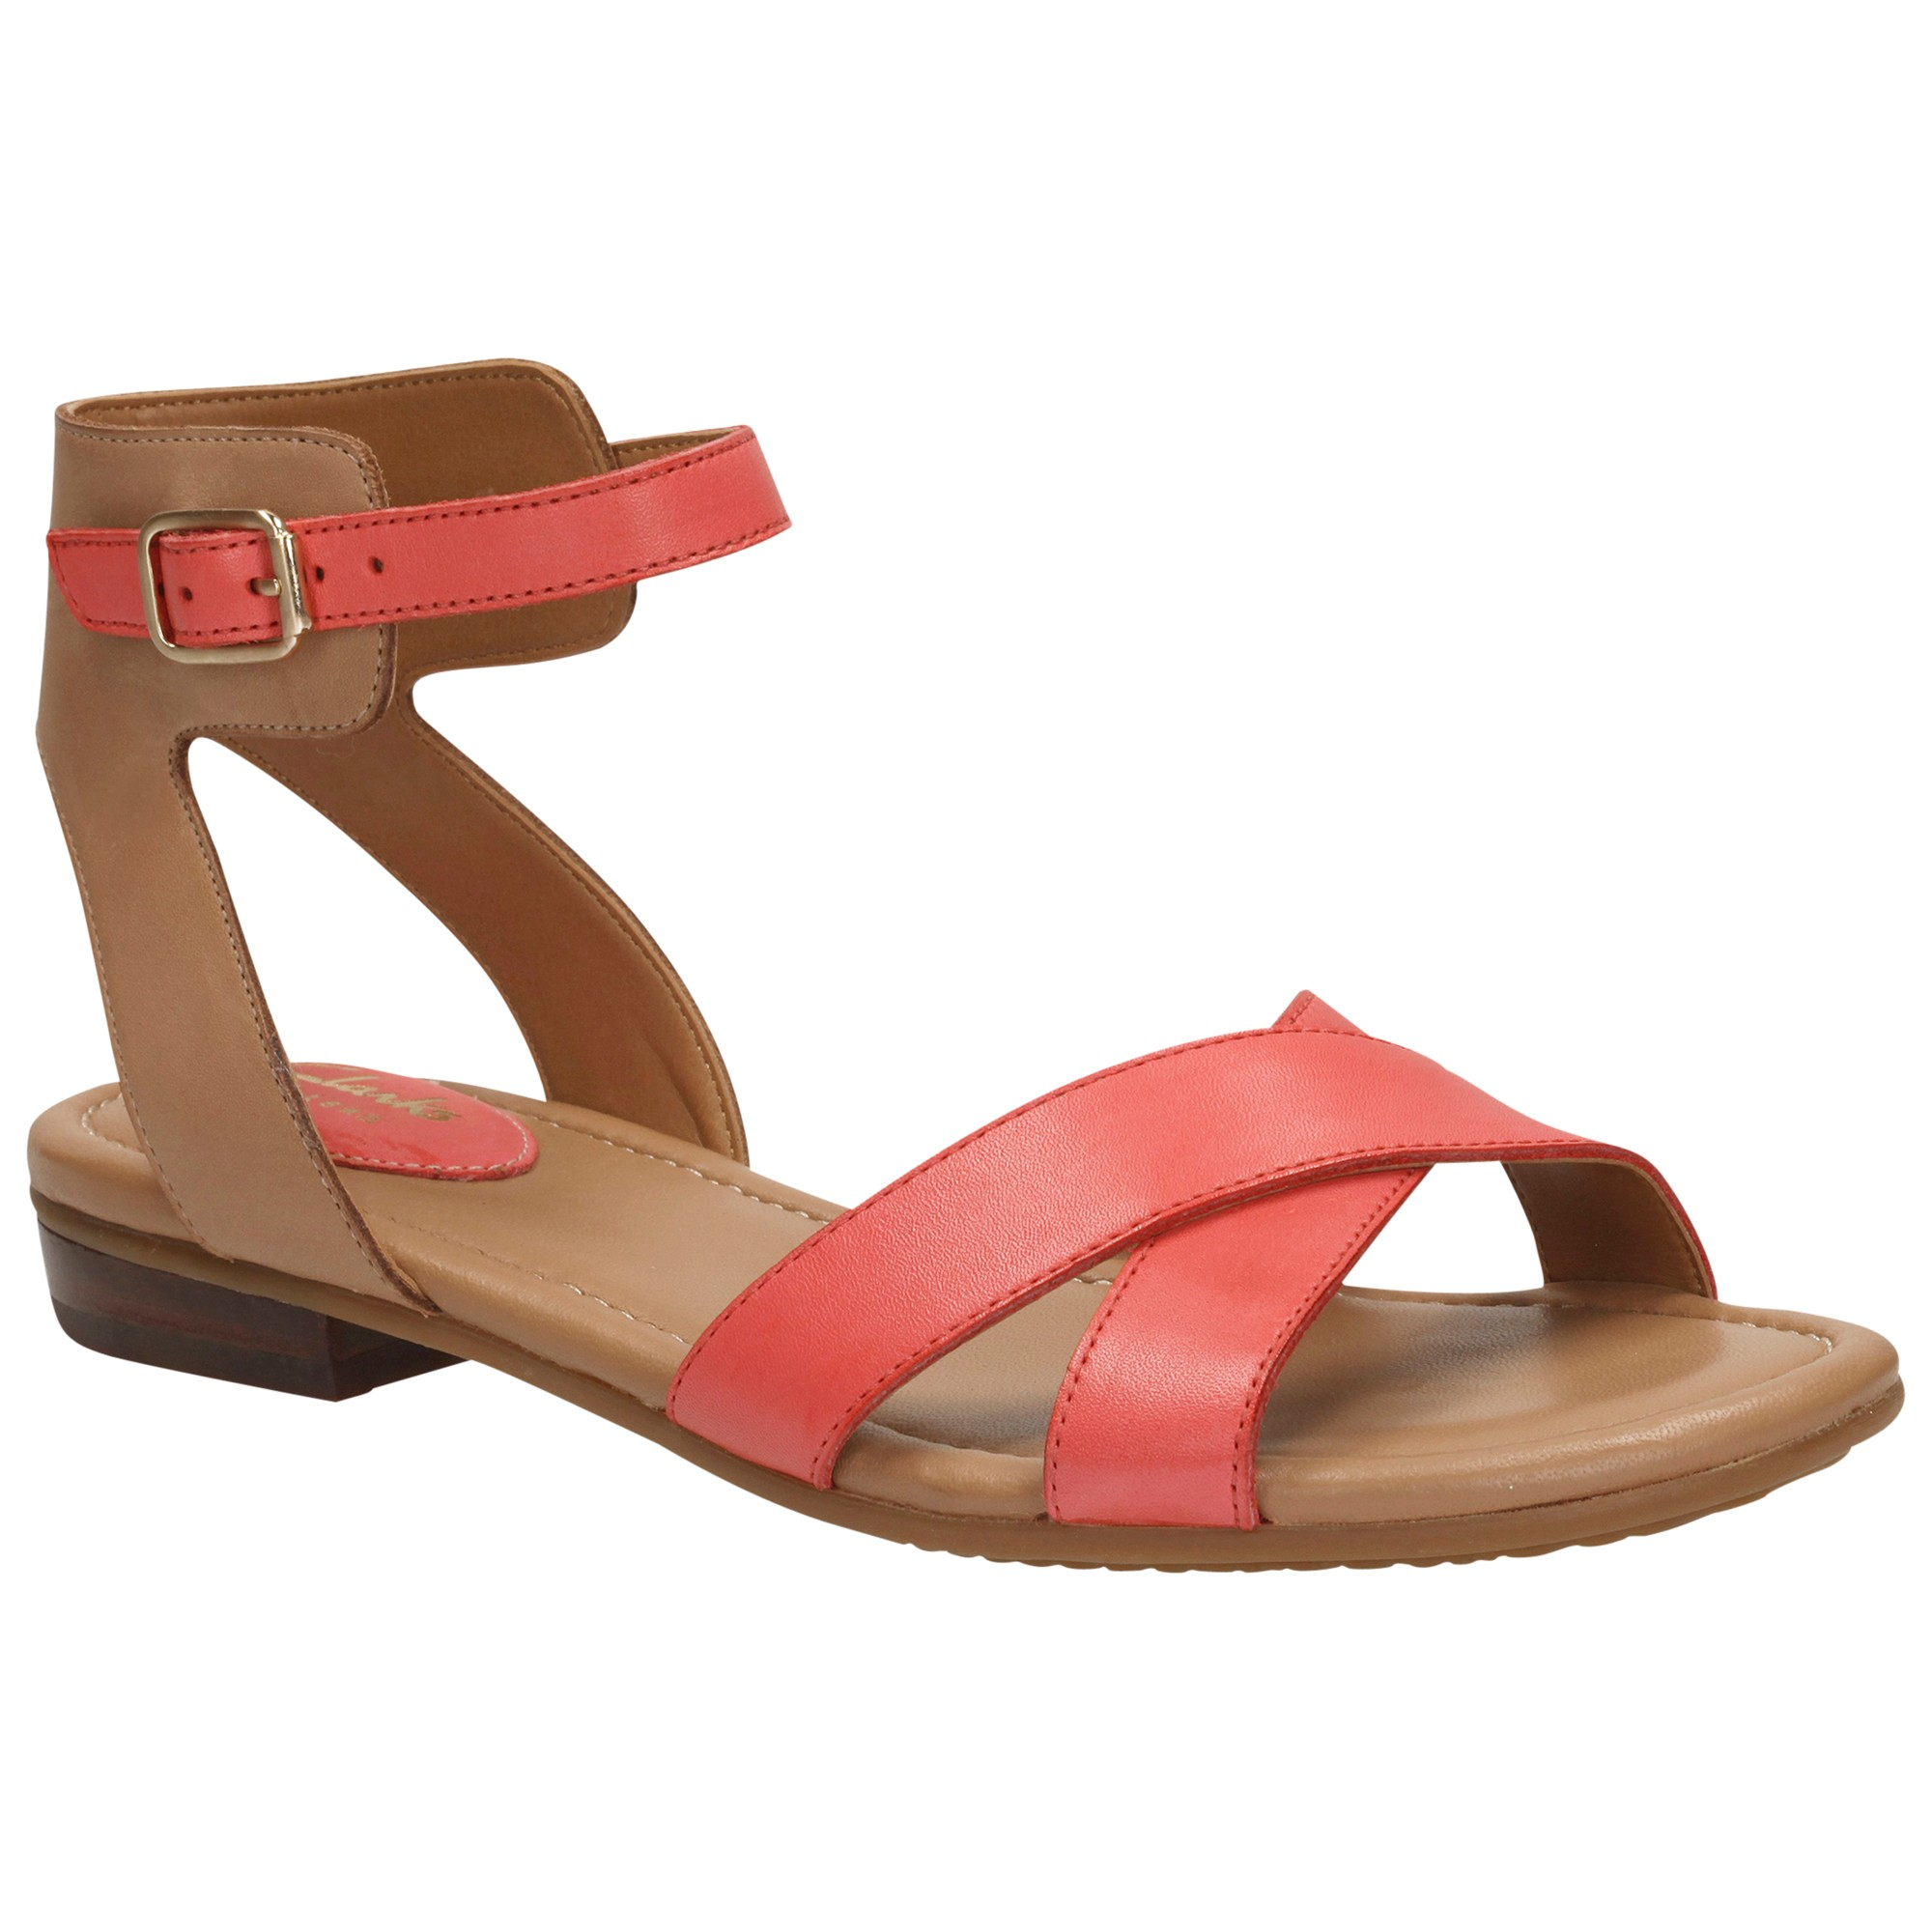 44719fafa6c Clarks Viveca Zeal Leather Ankle Strap Sandals in Pink - Lyst